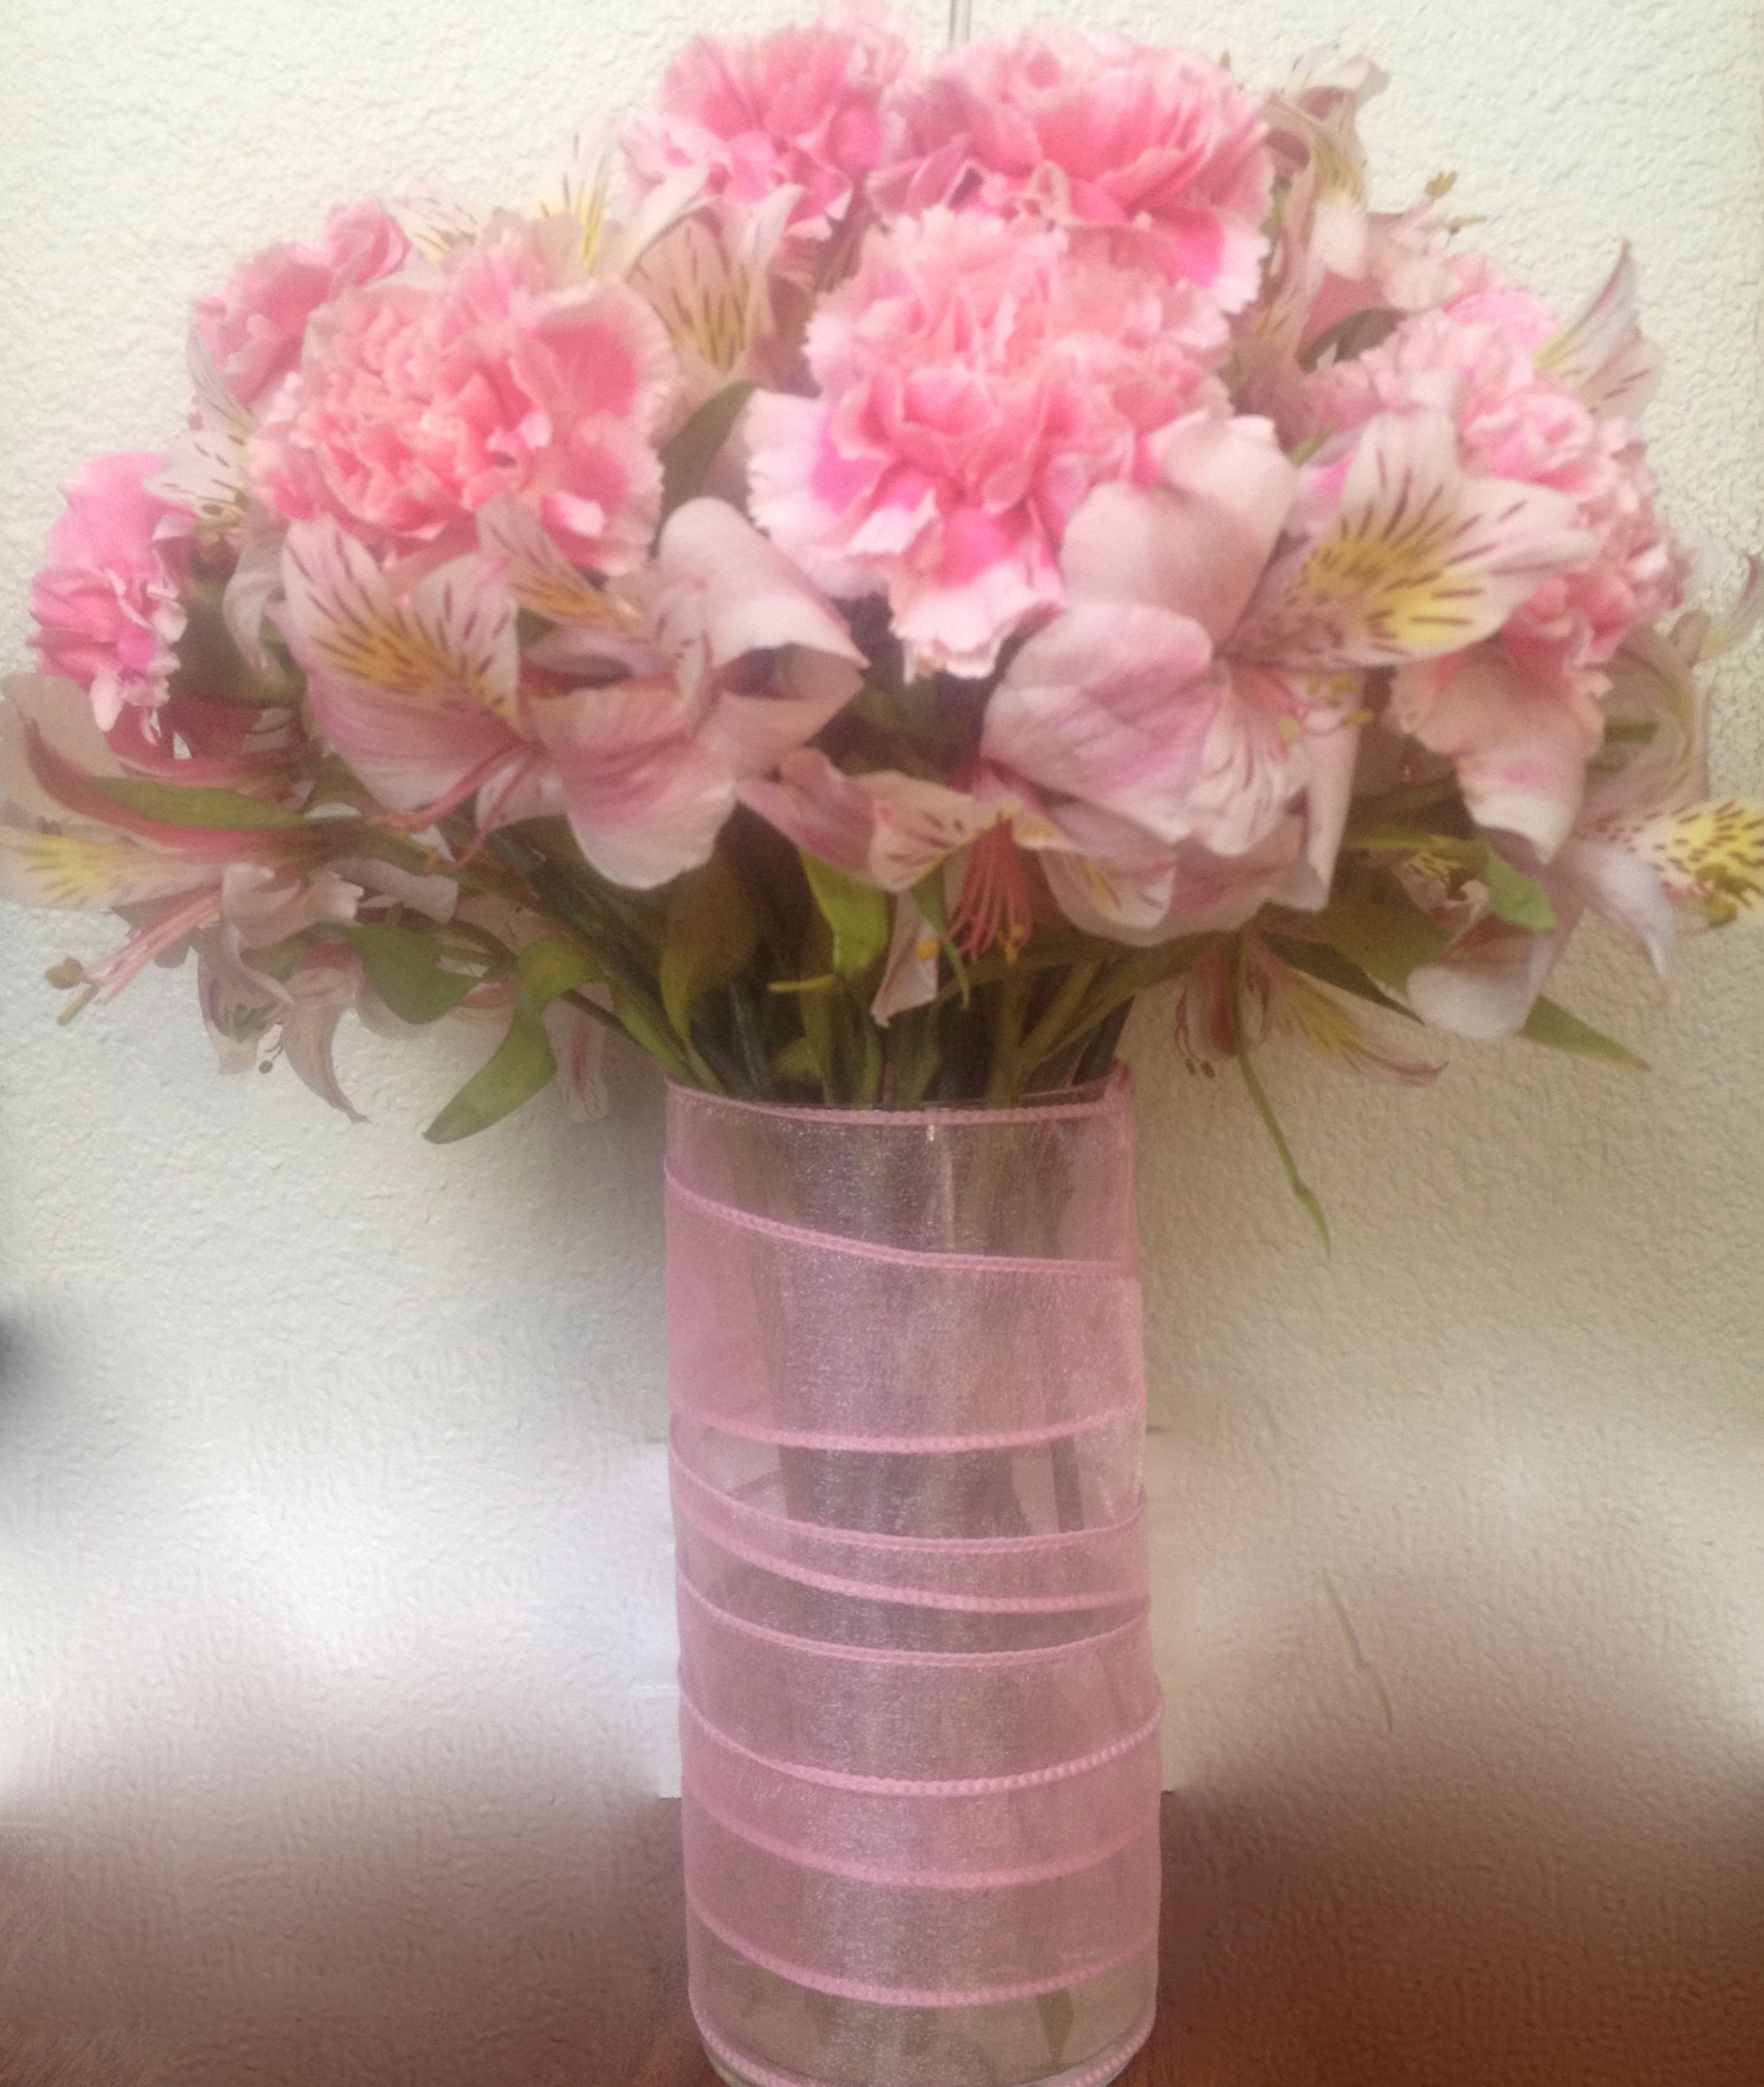 Royal Copenhagen Vases Of Extra Tall Vases Awesome It S A Girl Pink Carnations Alstroemeria Regarding Extra Tall Vases Awesome It S A Girl Pink Carnations Alstroemeria In A Glass Vase